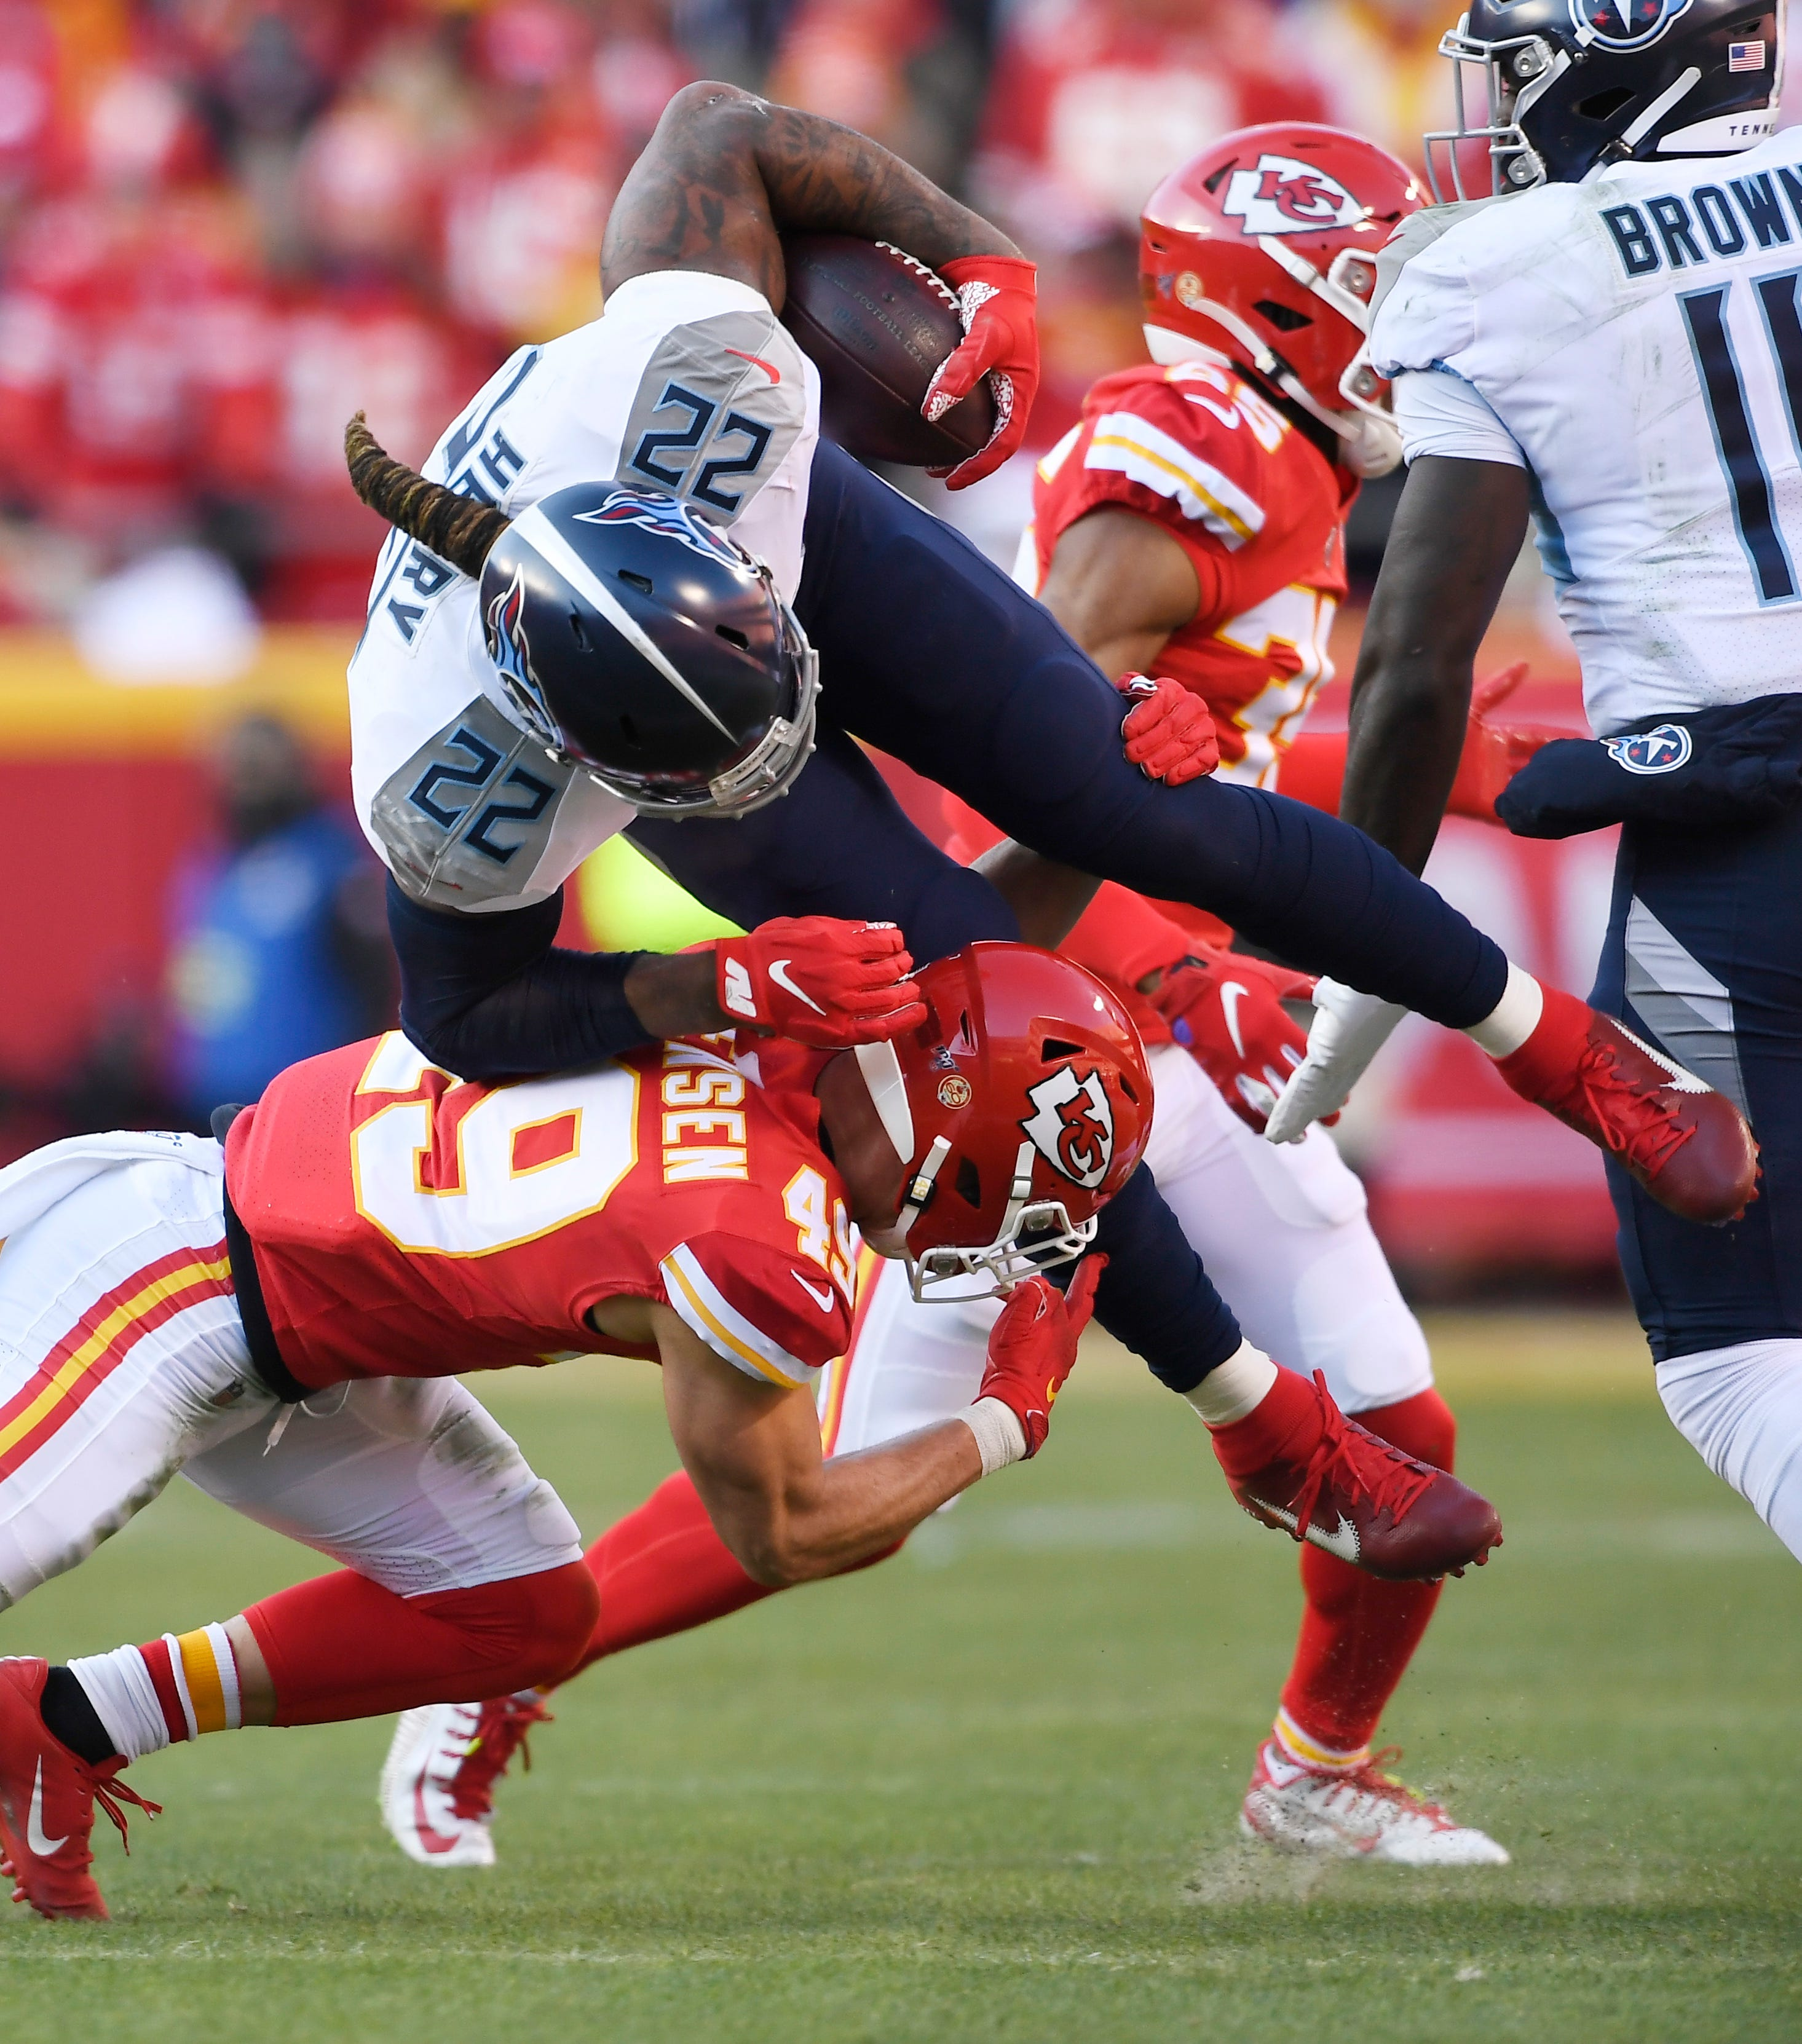 Opinion: Odds finally catch up with Tennessee Titans in AFC championship loss to Chiefs